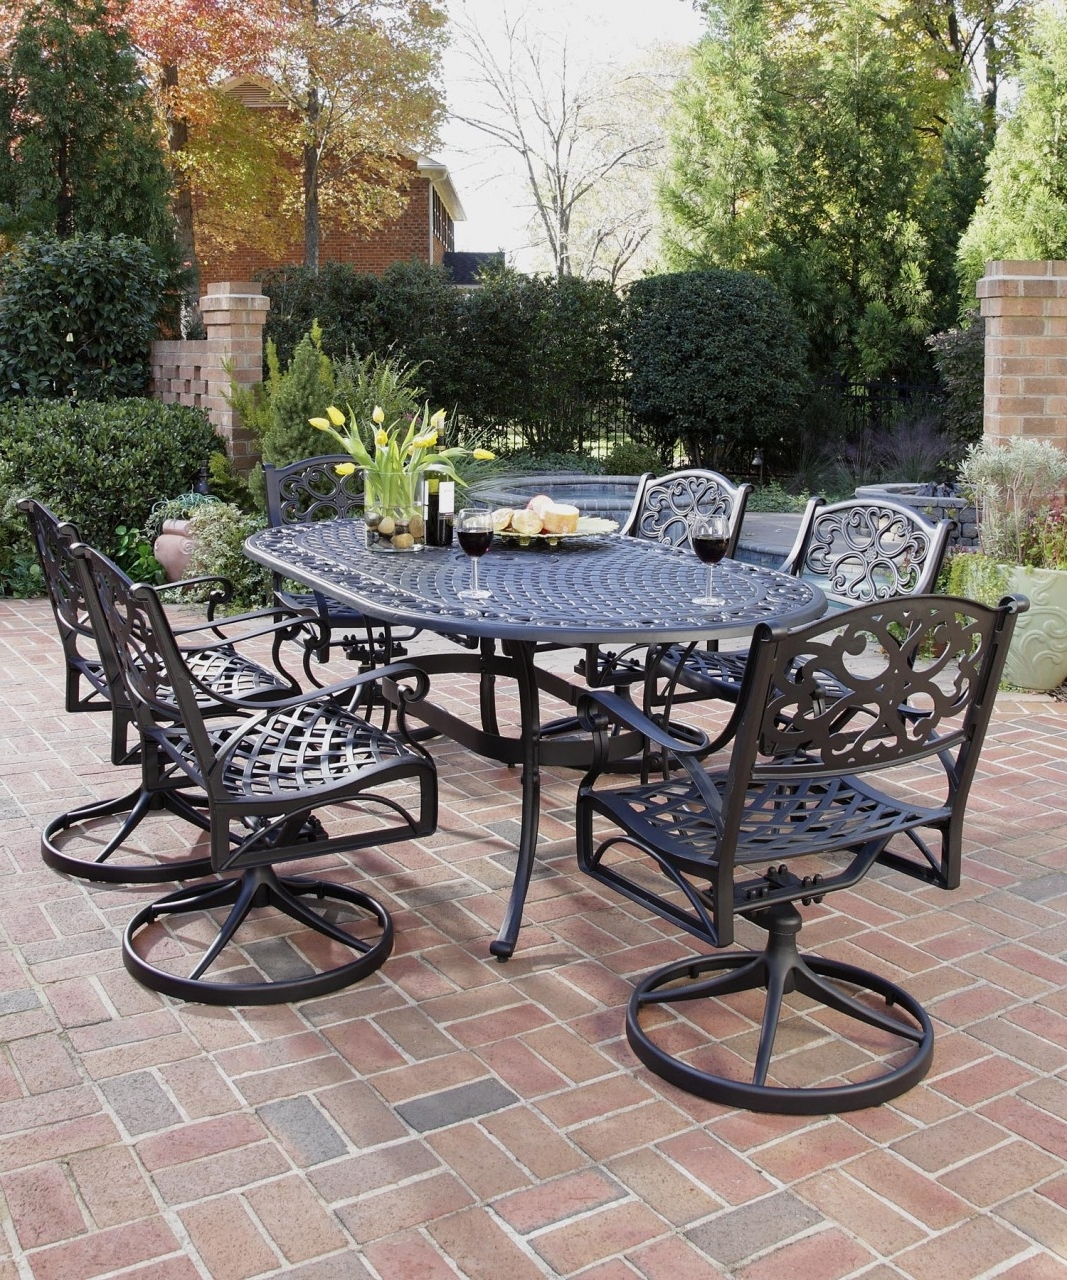 Top Wrought Iron Patio Furniture Sets : Sathoud Decors – To Buy With Widely Used Wrought Iron Patio Conversation Sets (View 10 of 15)